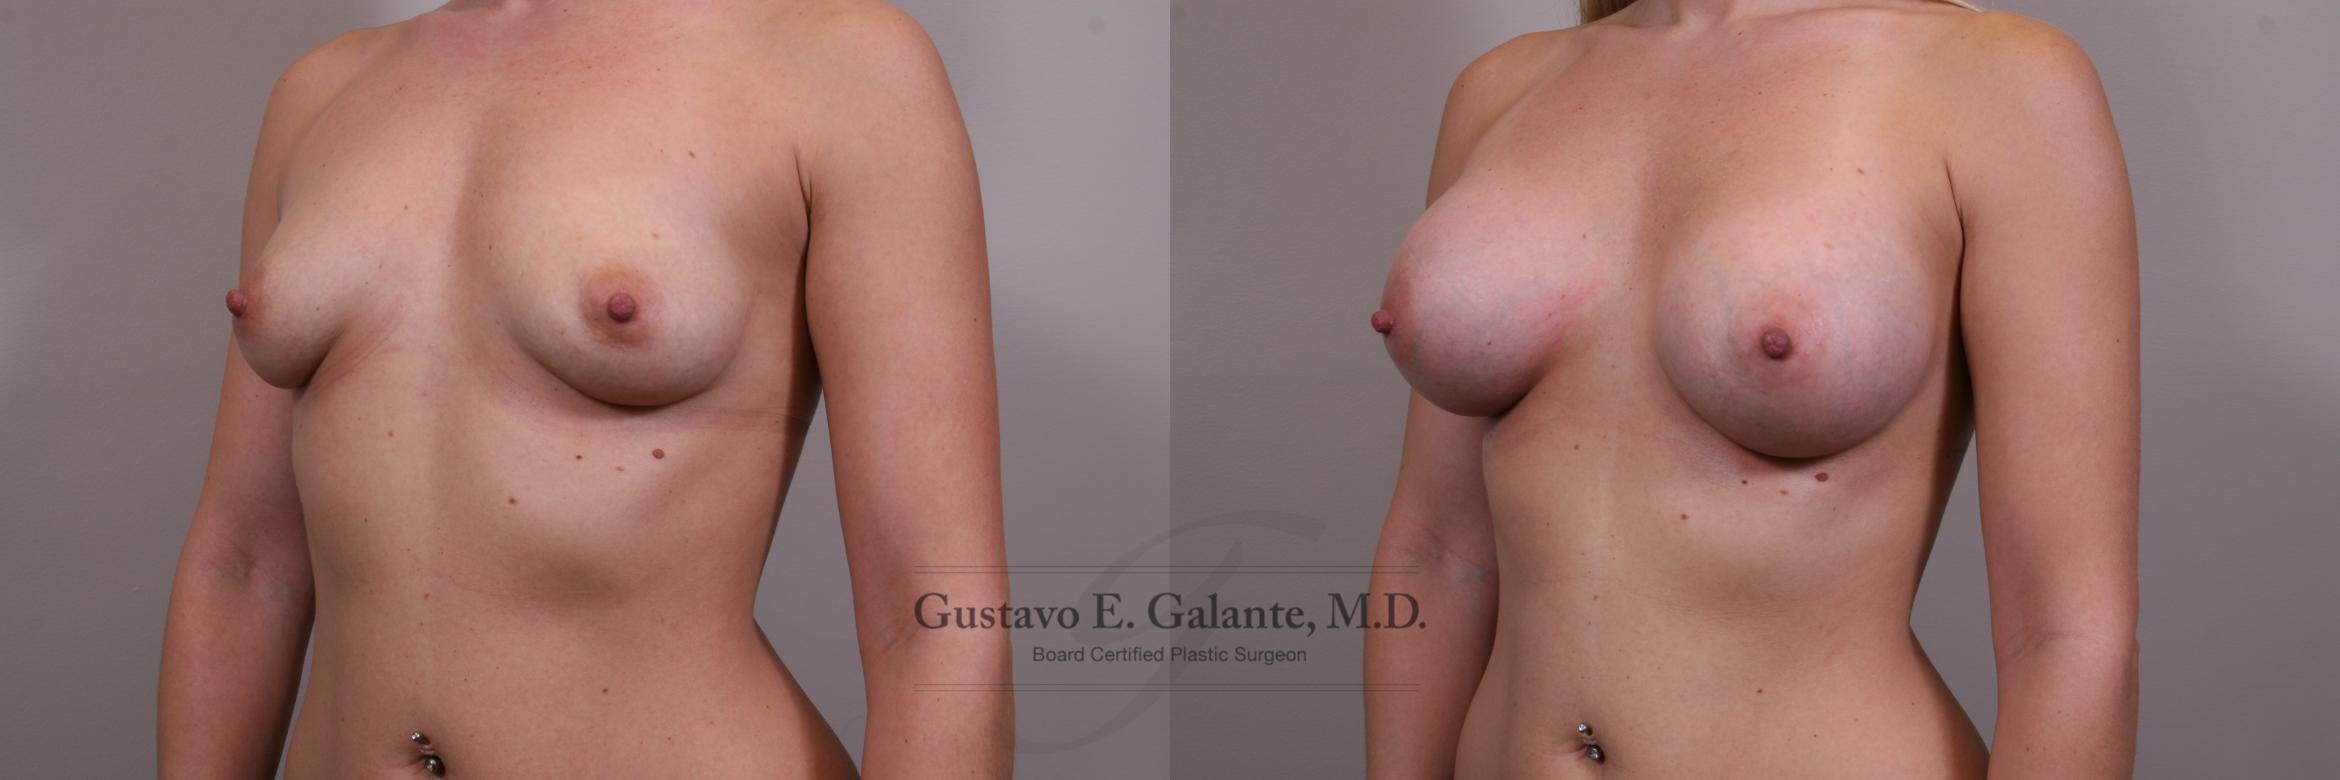 Breast Augmentation Case 149 Before & After View #2 | Valparaiso & Schererville, IN | Gustavo E. Galante, MD